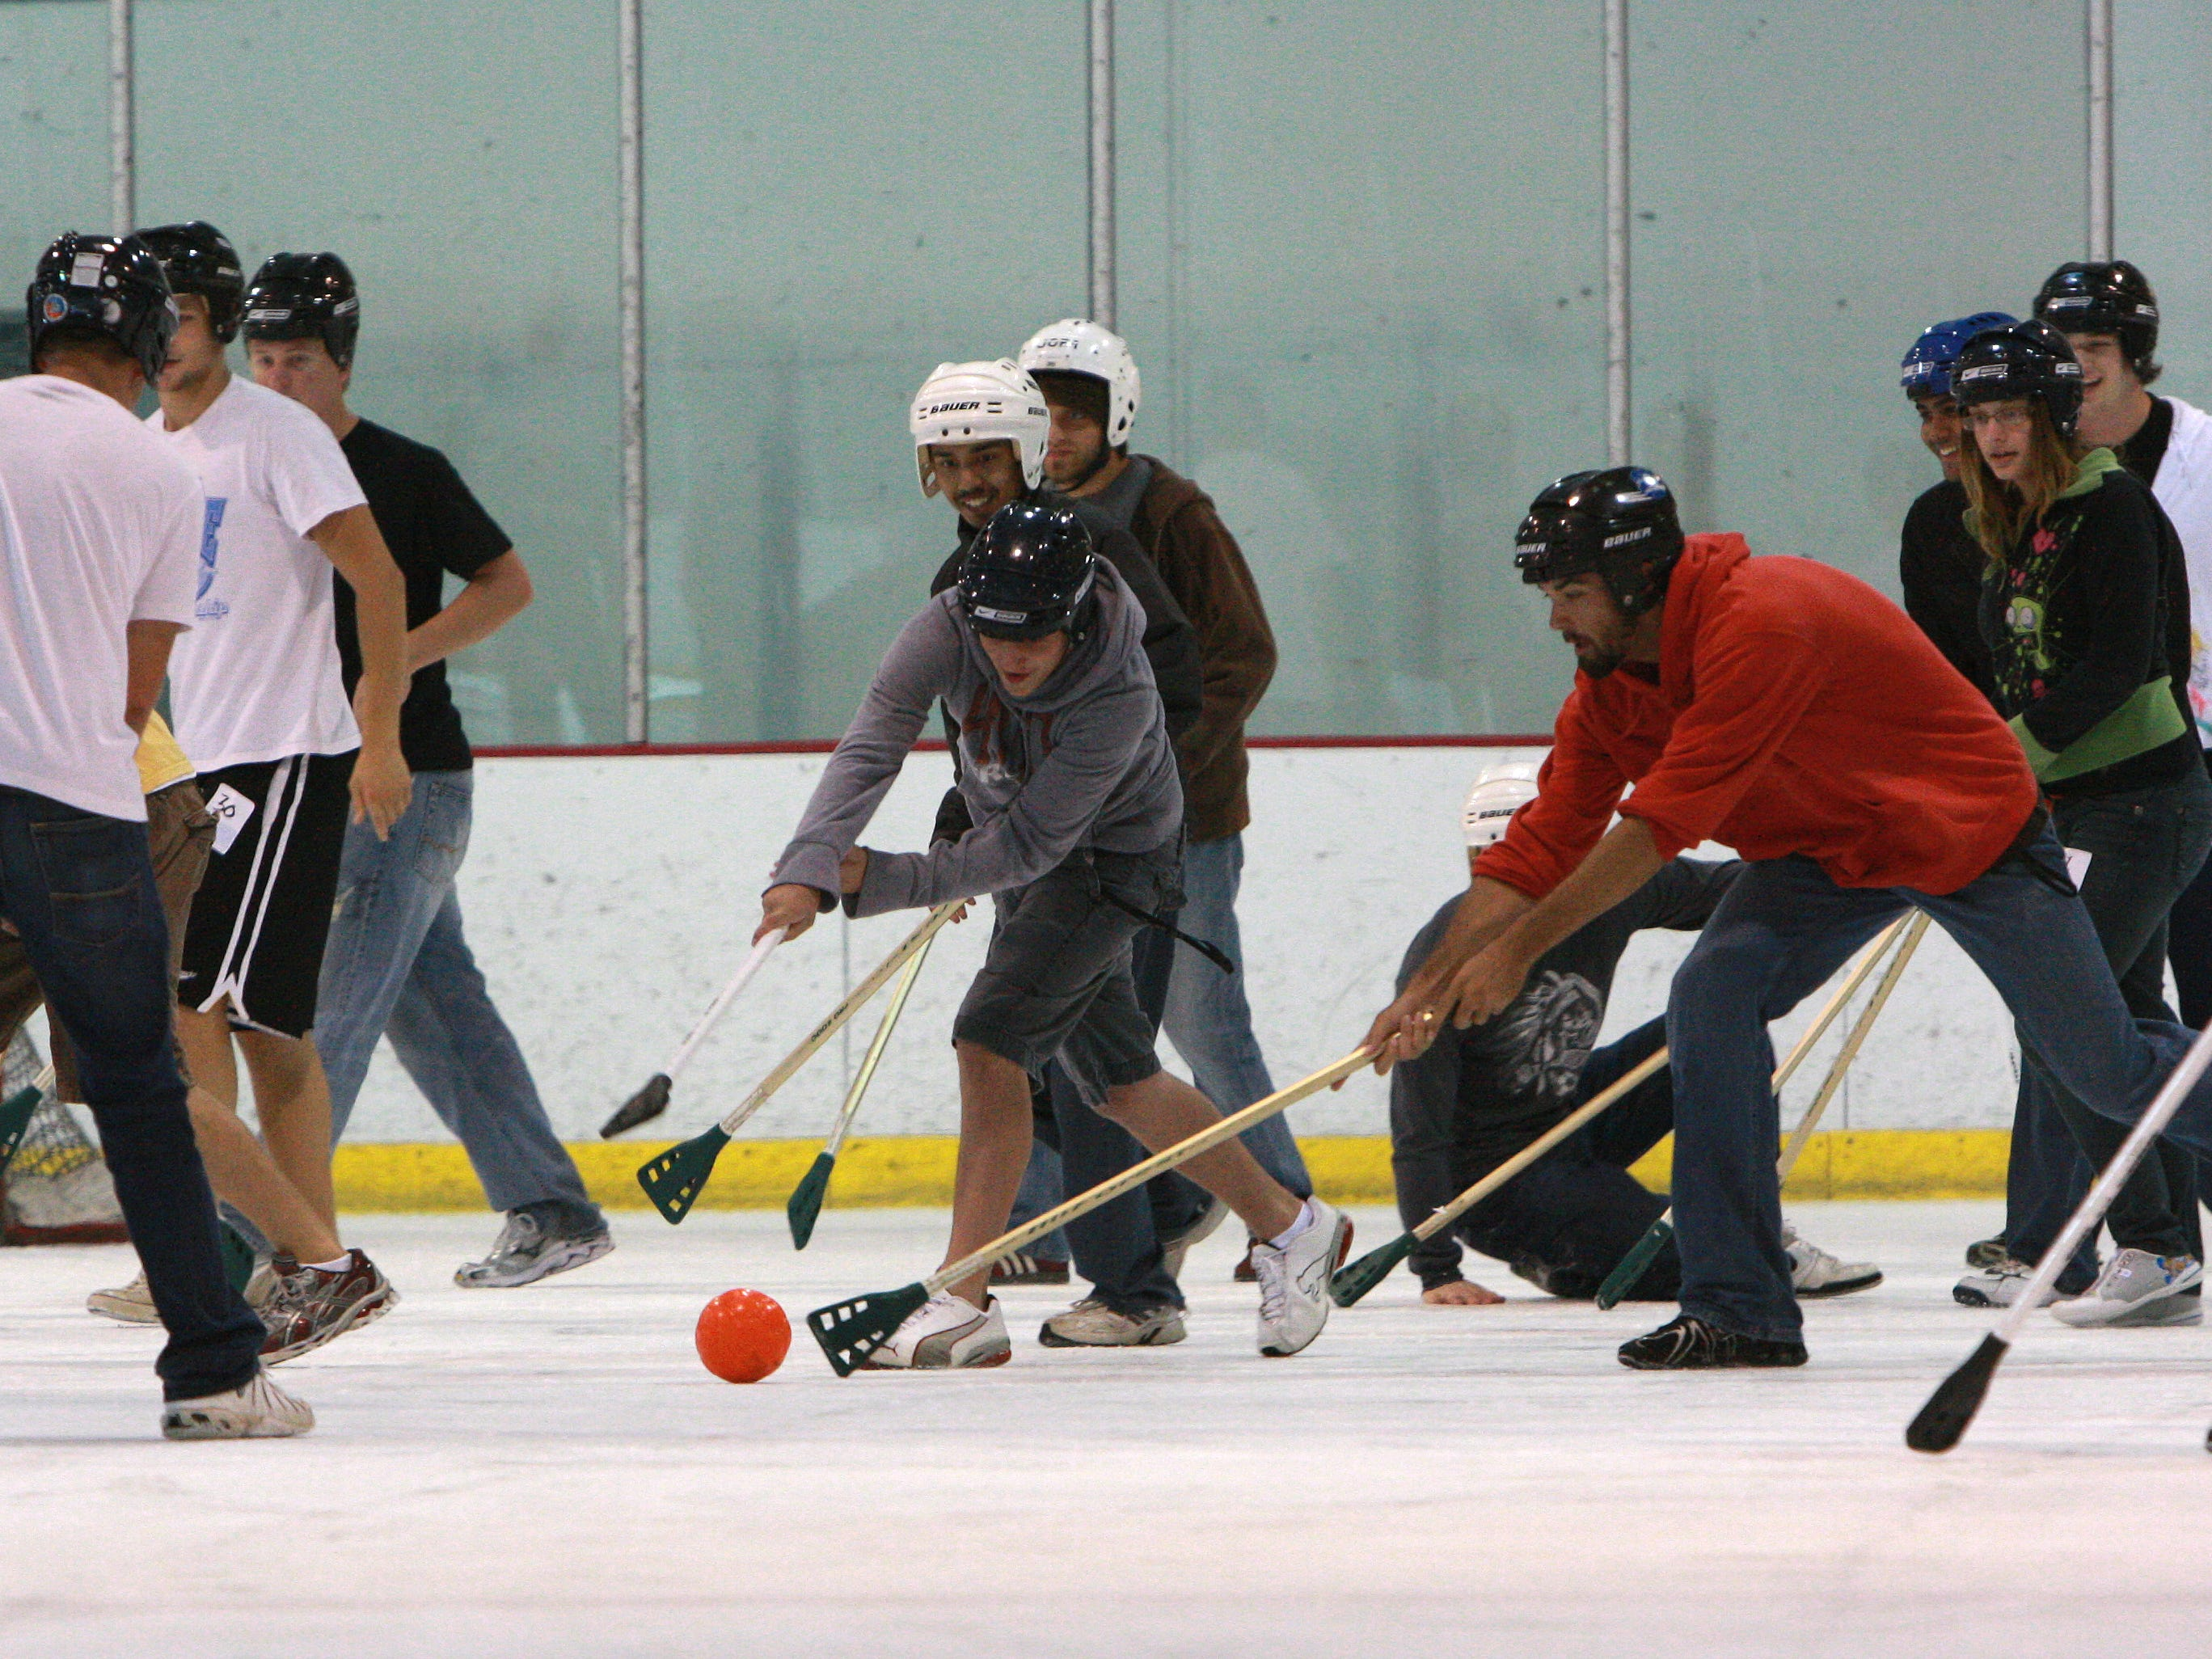 New Drury students play broomball at Mediacom Ice Park as part of a four-day orientation program.